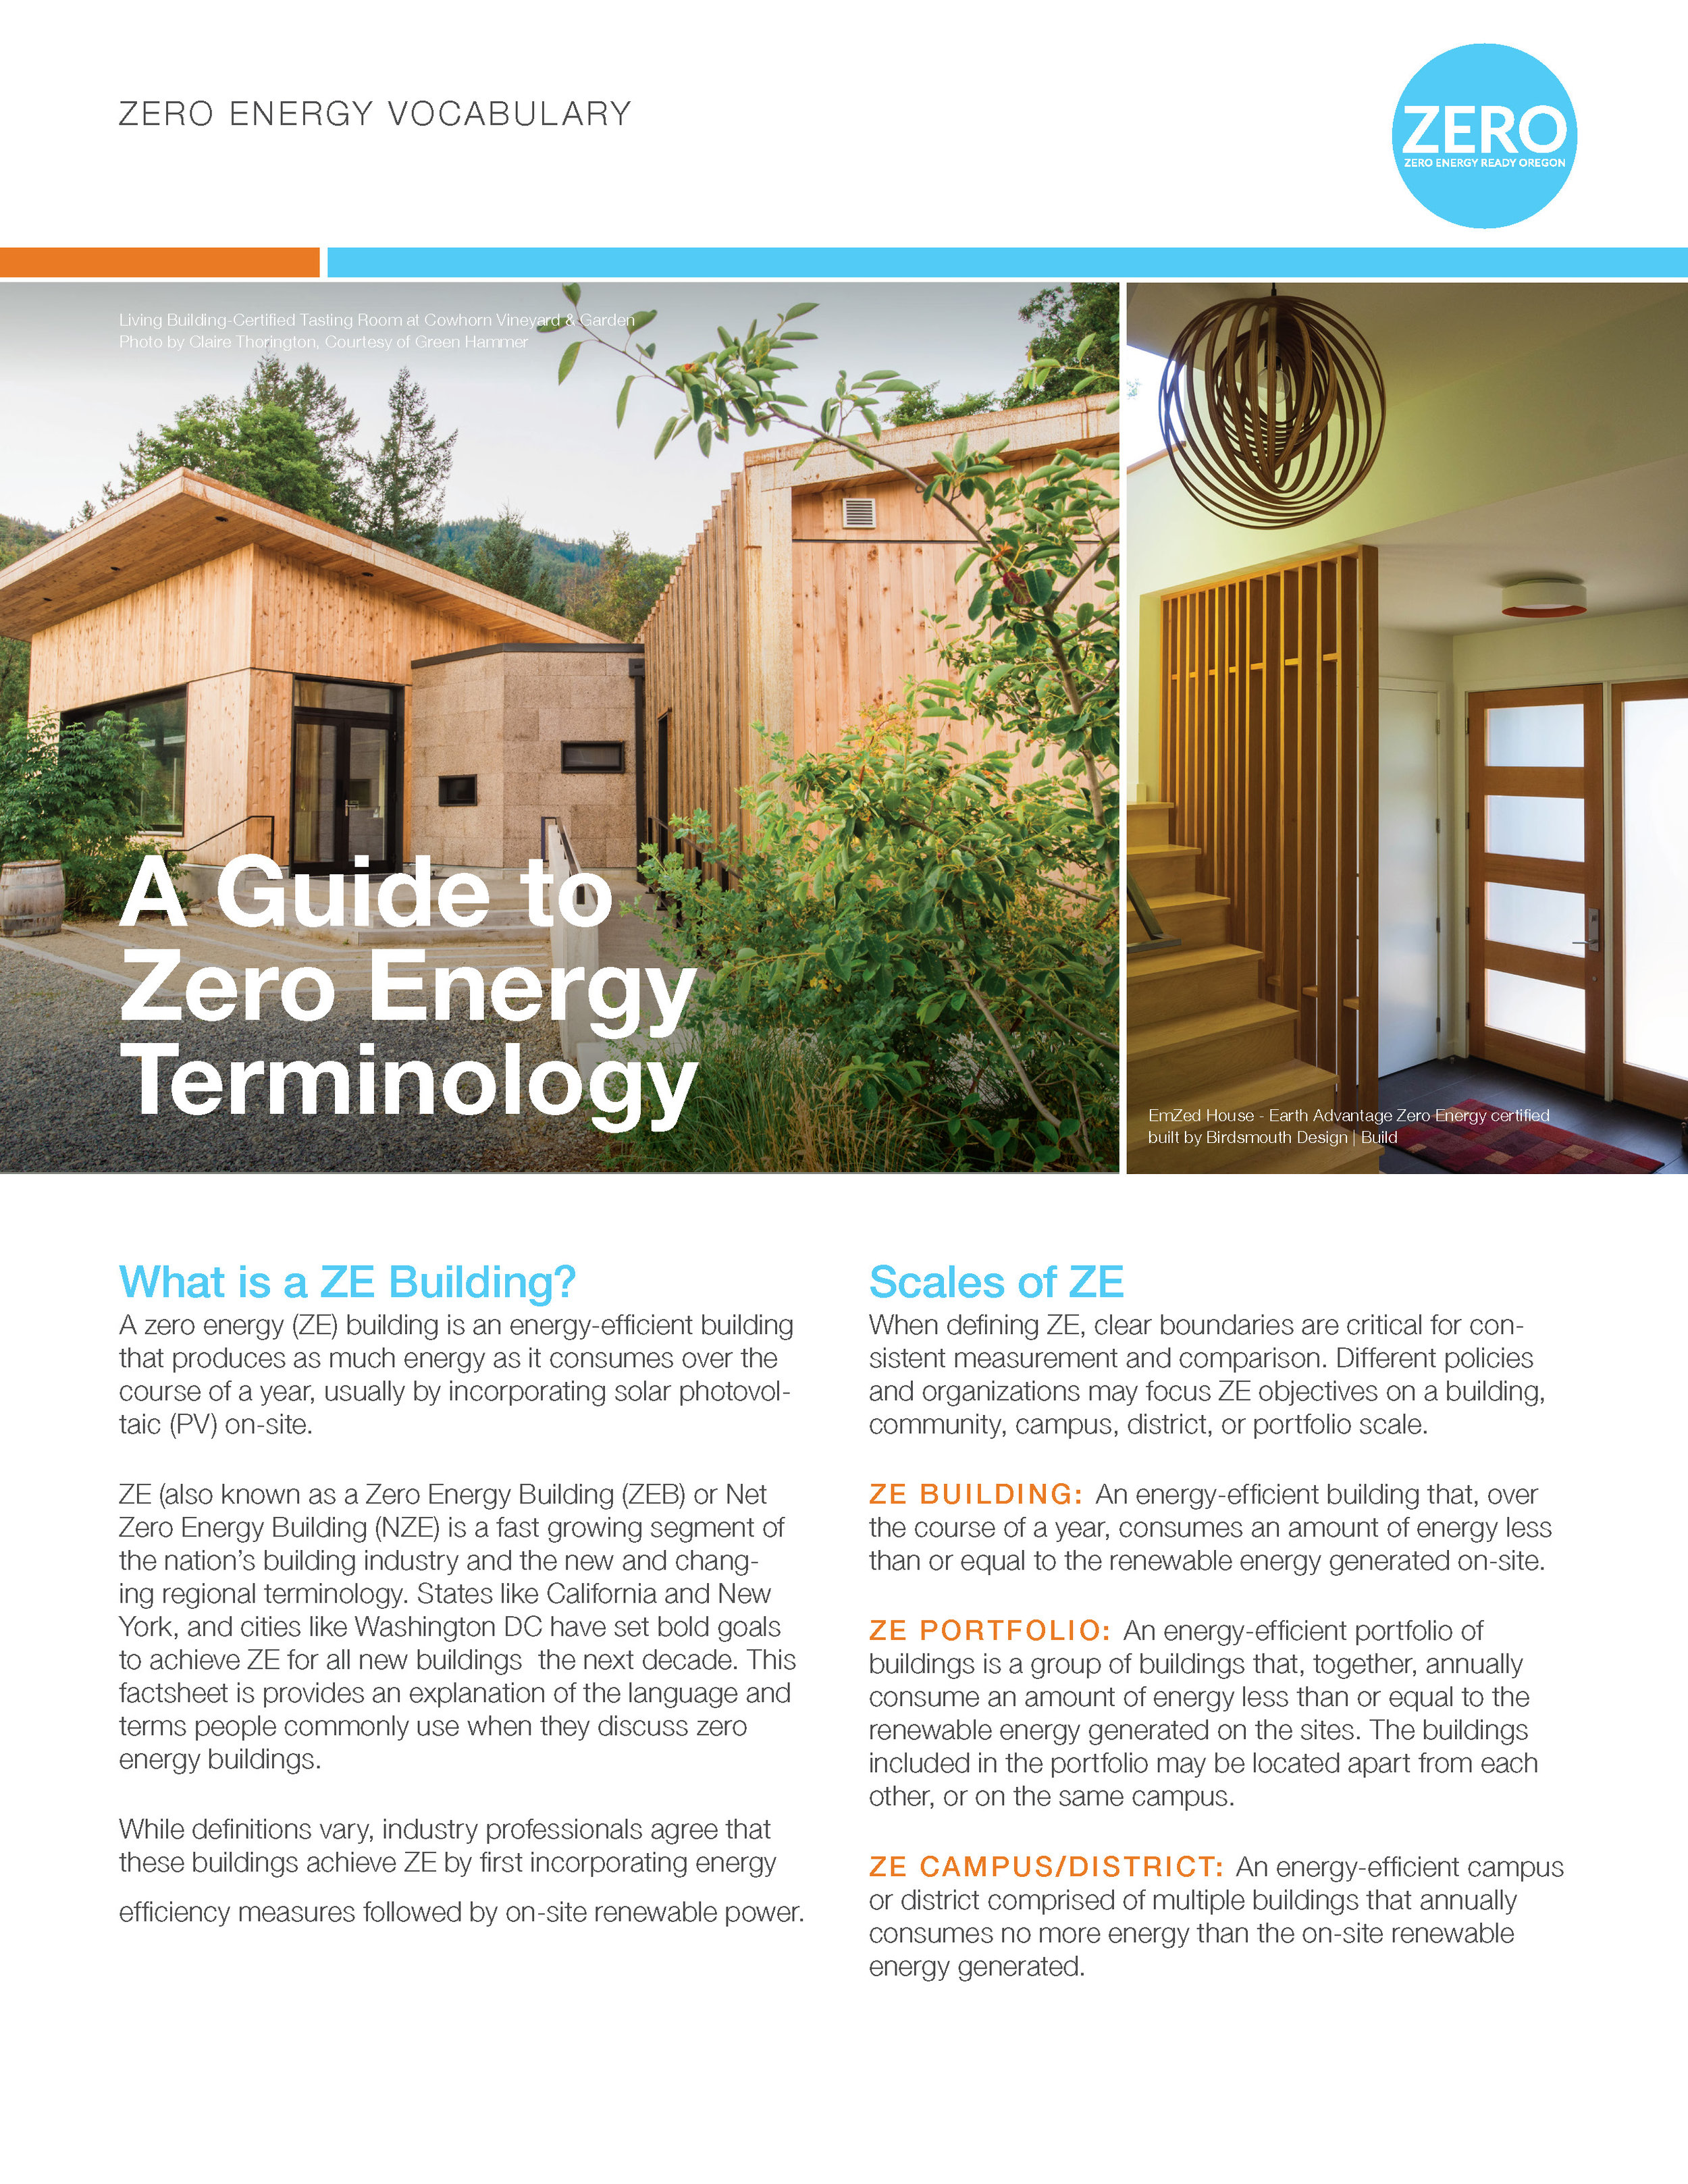 Zero Energy Terminology Fact Sheet - This factsheet provides an explanation of the language and terms people commonly use when they discuss zero energy buildings.